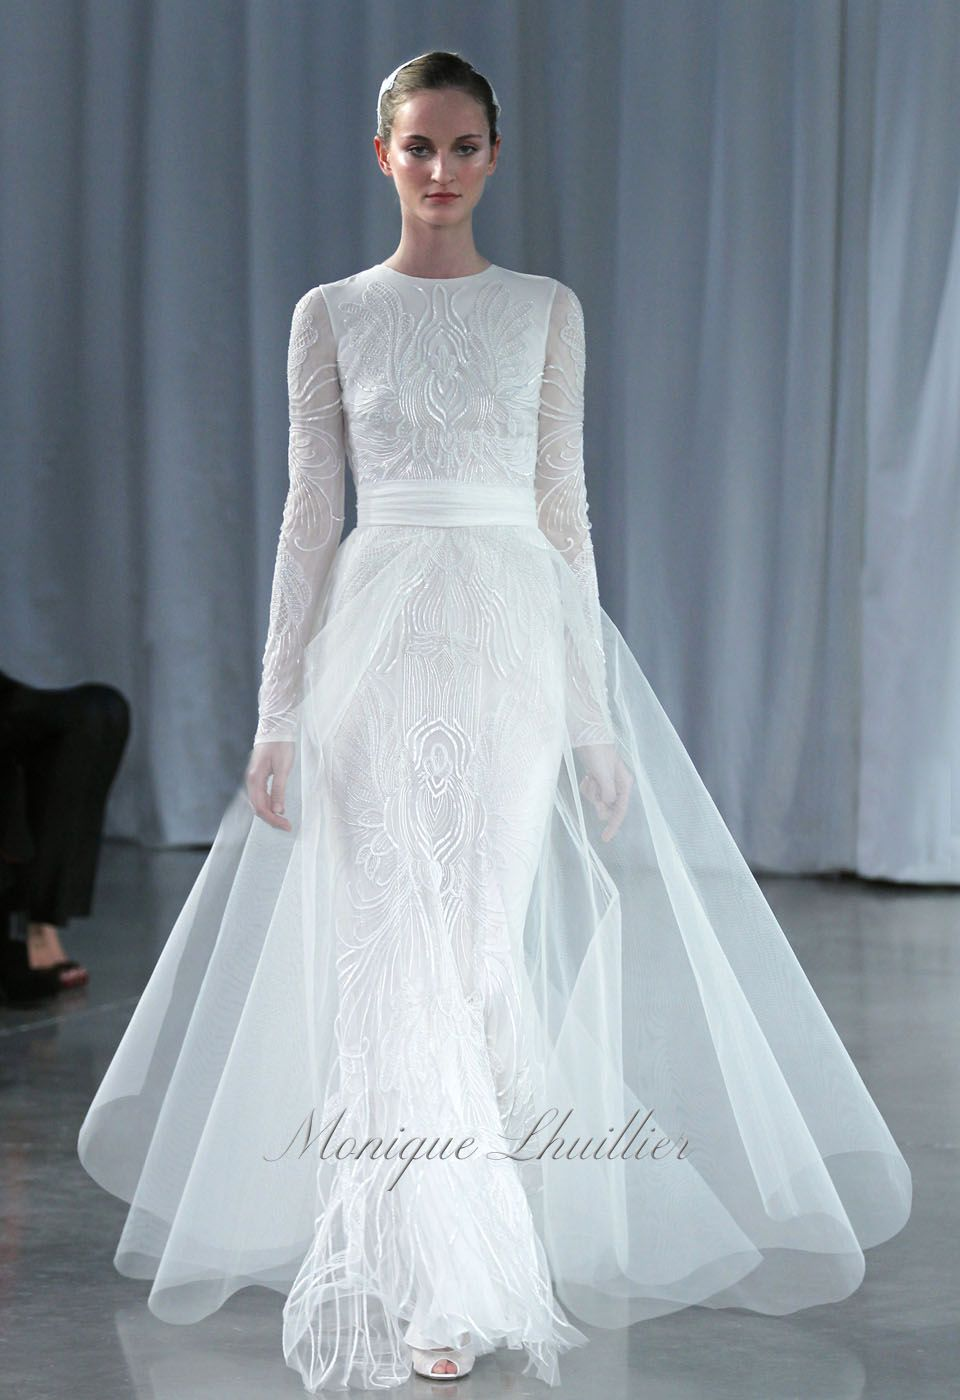 Papillon Monique Lhuiller Fall 2013 Bridal SILK WHITE EMBROIDERED ...